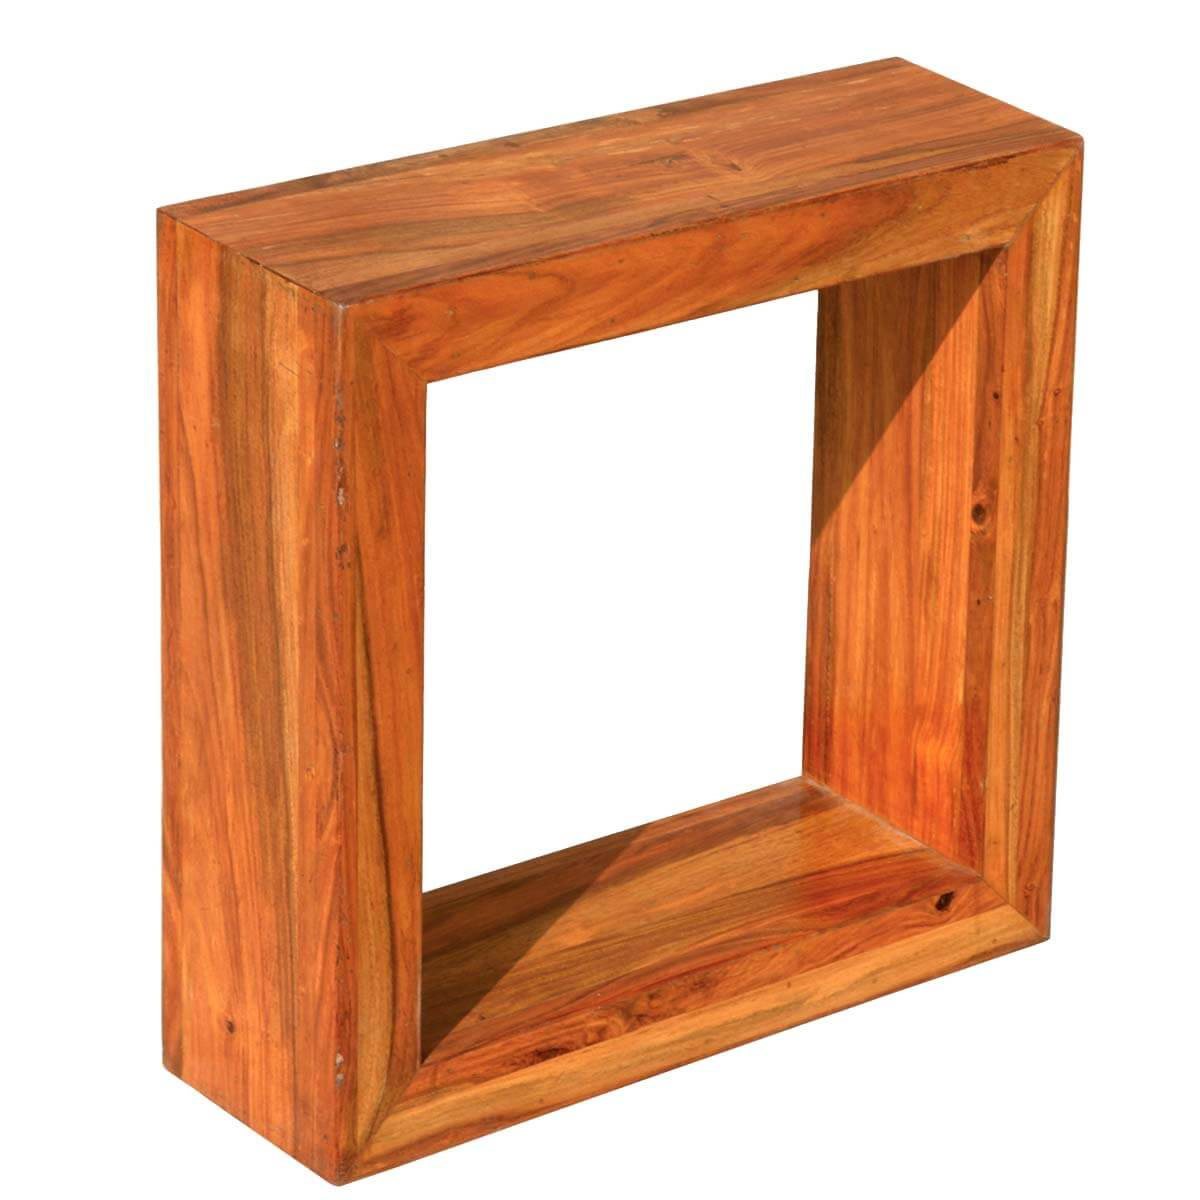 18 solid wood open back display small side table for Small wood end table